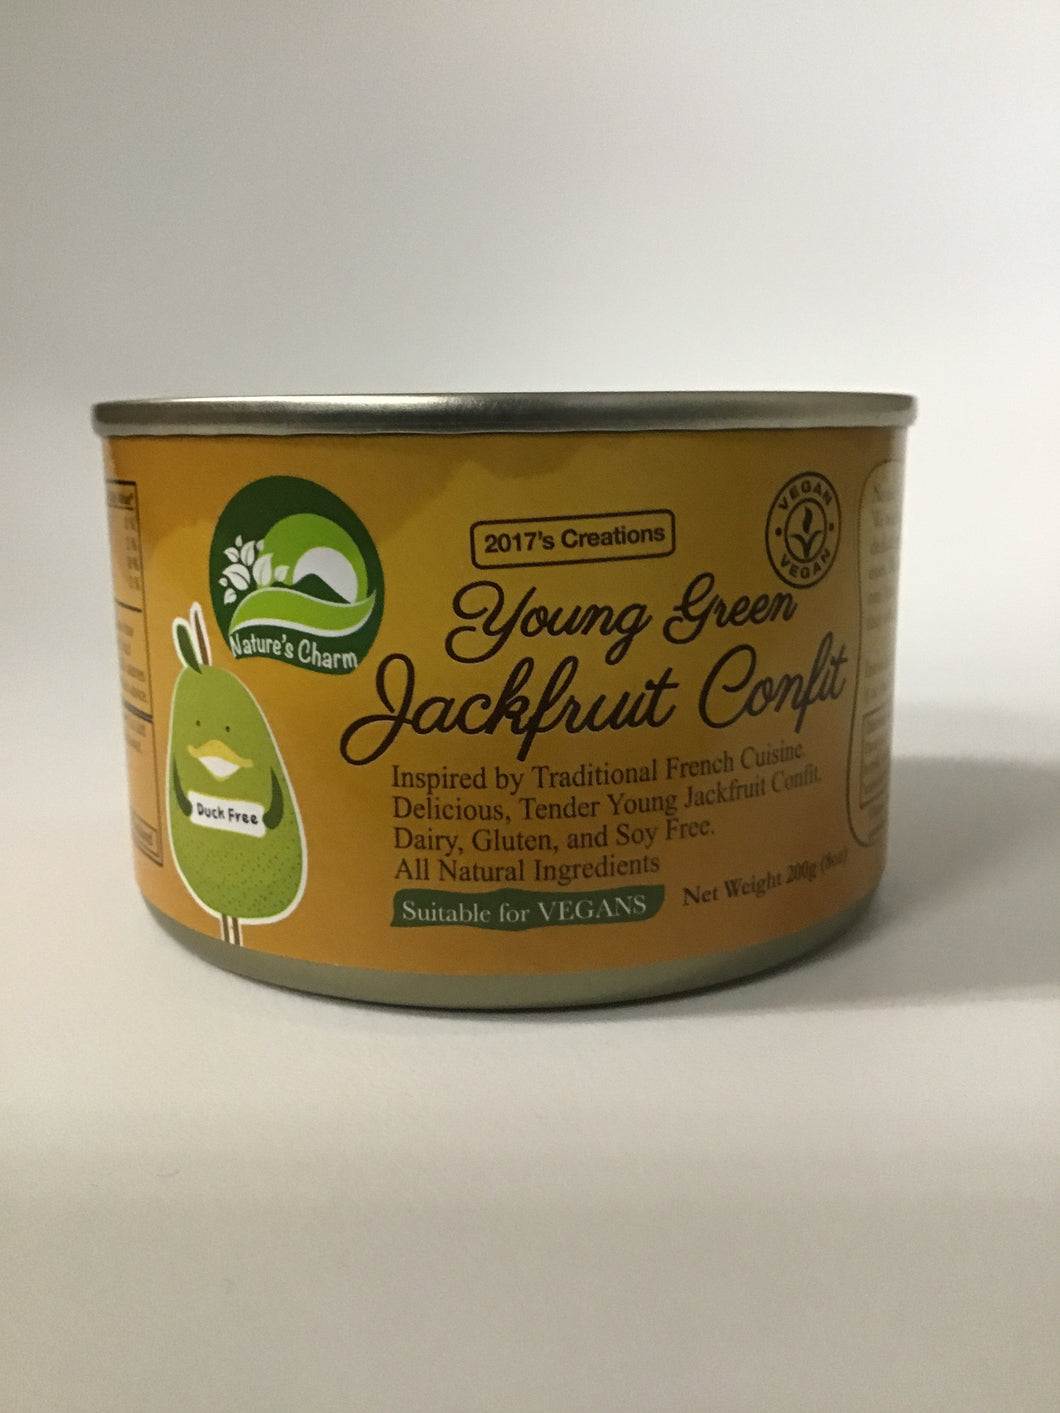 Natures Charm - Jackfruit (Young Green Confit)